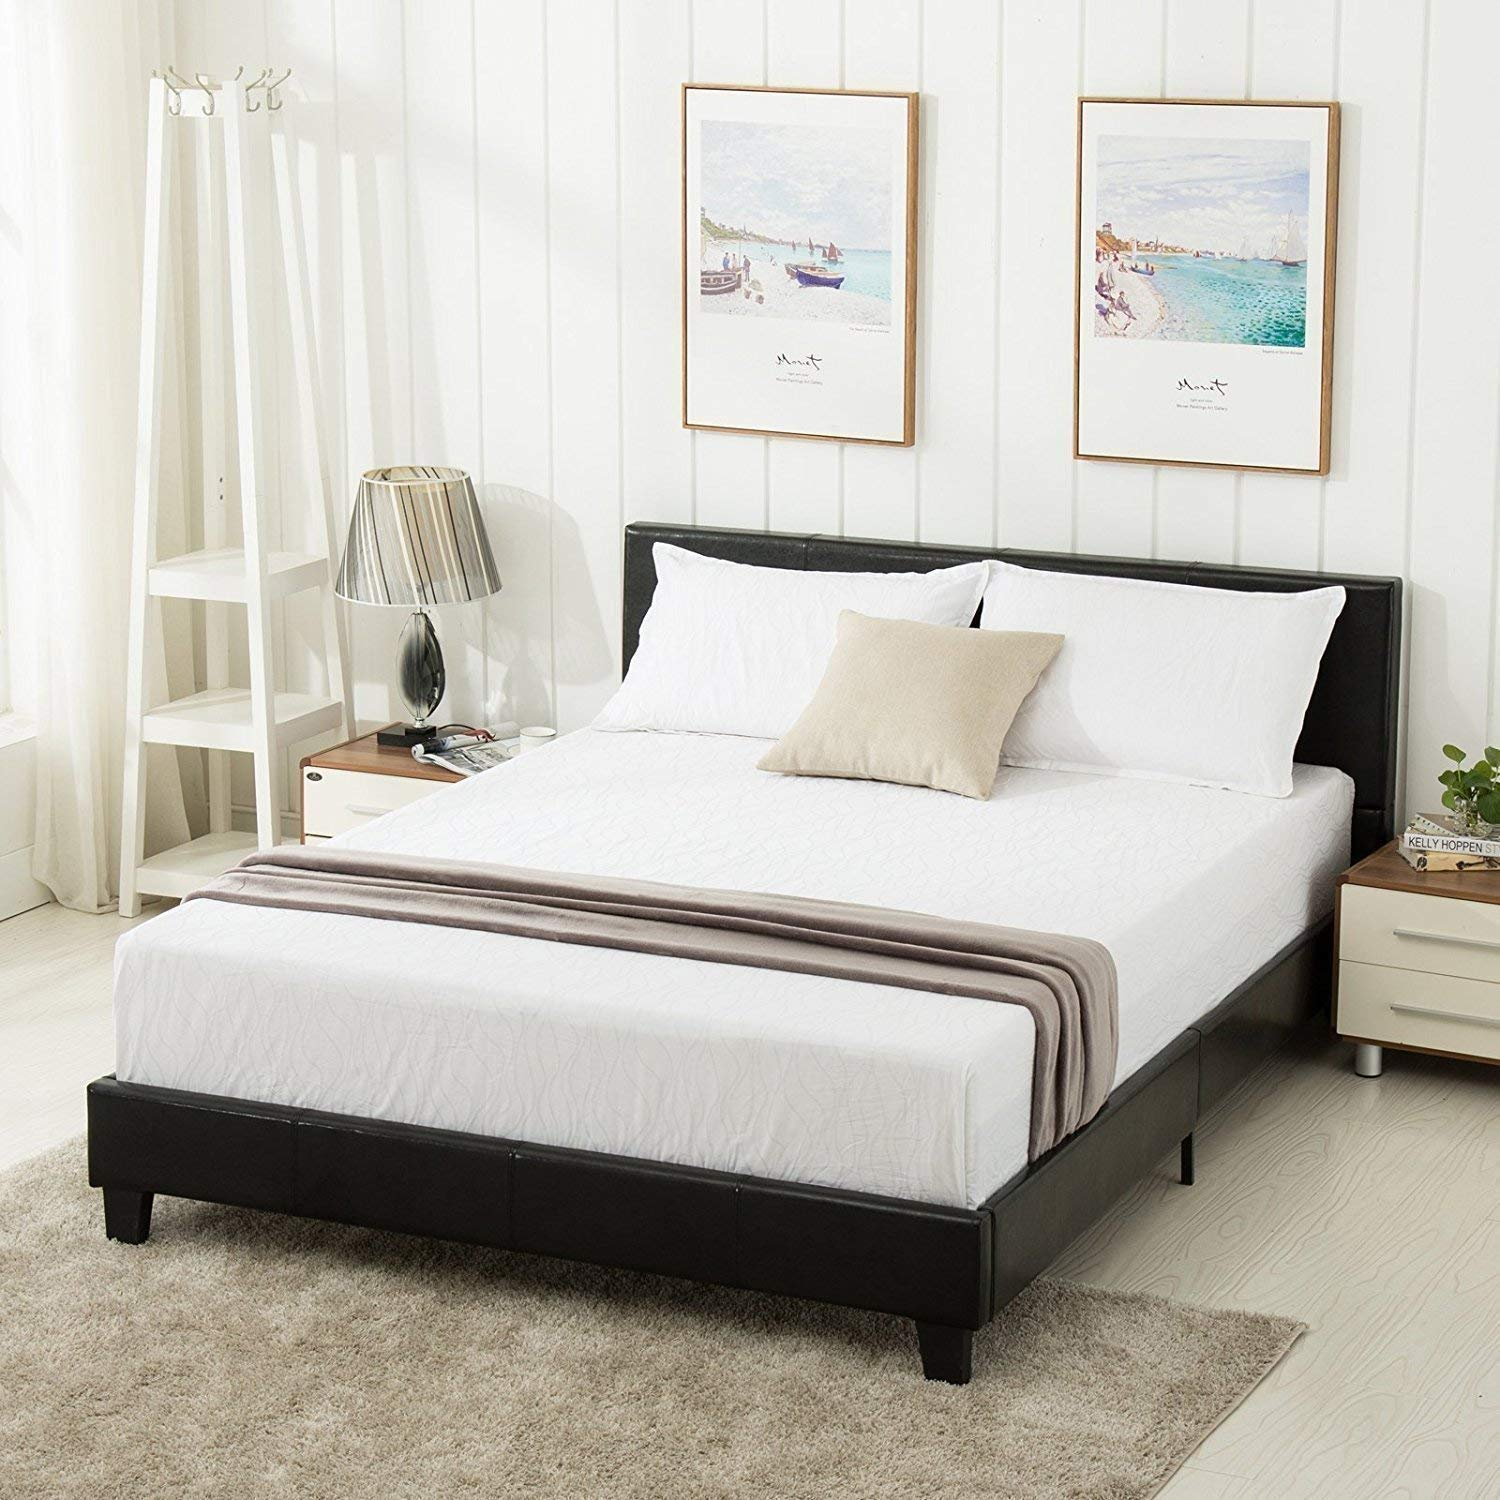 Mecor Queen Bed Frame - Faux Leather Upholstered Bonded Platform Bed/Panel Bed - with Headboard - No Box Spring Needed - for Adults Teens Children,Black-Queen Size